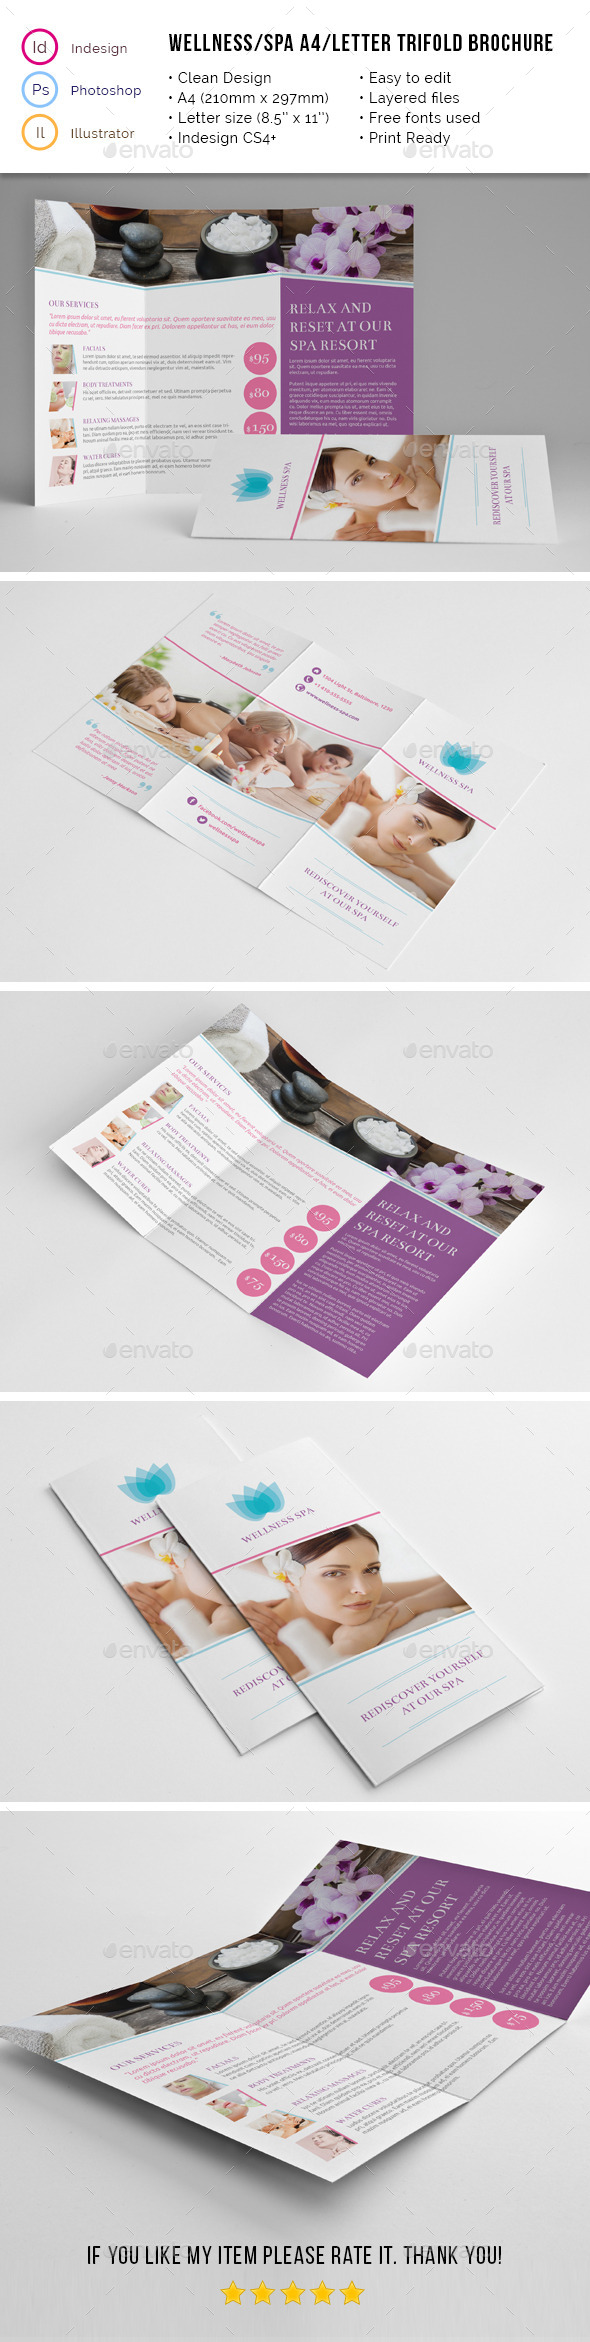 Spa Wellness A4 / Letter Trifold - Corporate Brochures